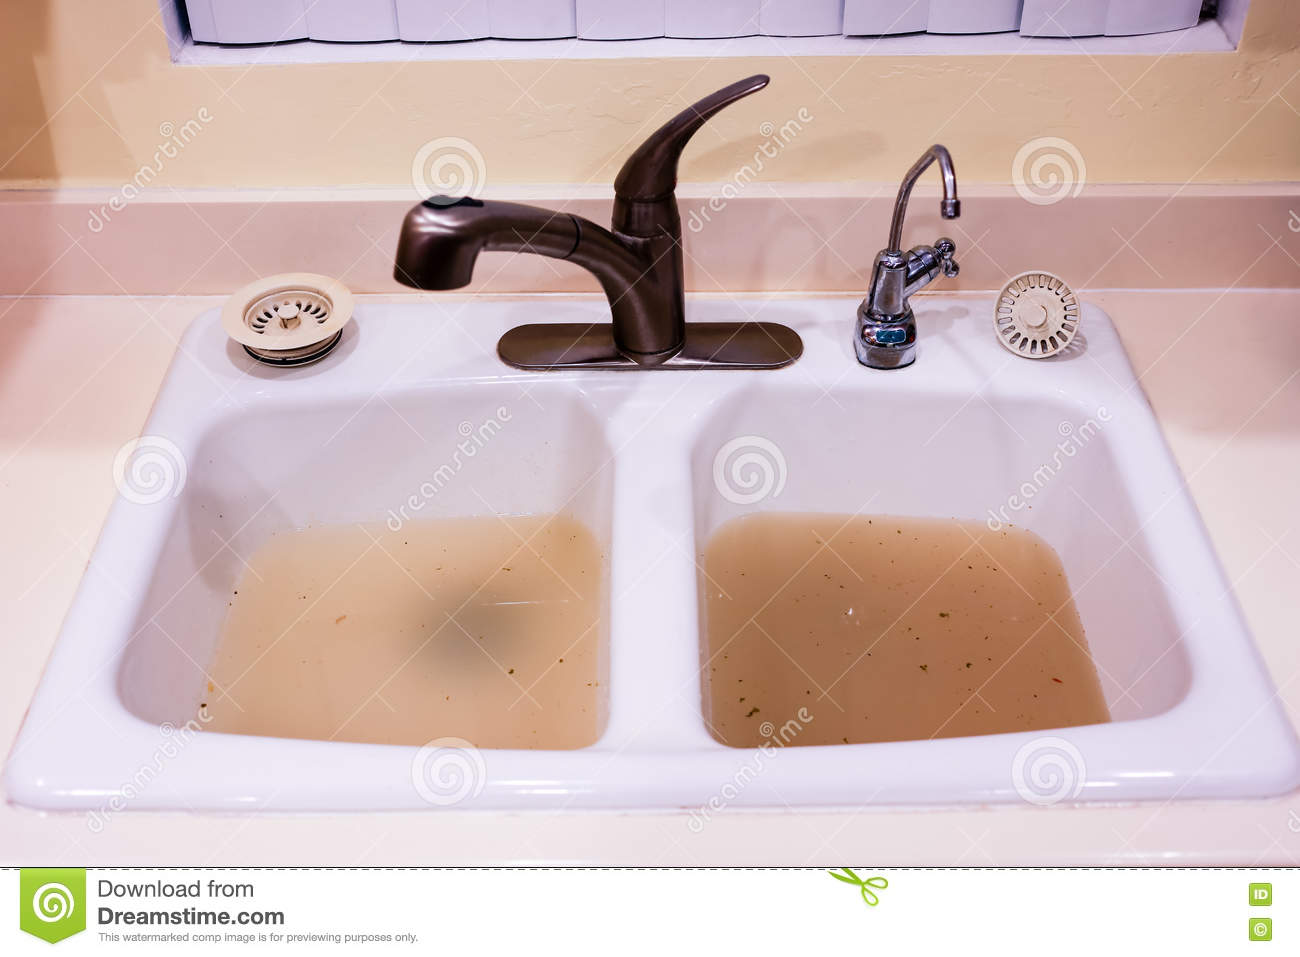 Clogged Kitchen Sink Stock Photo Image Of Drain Clog